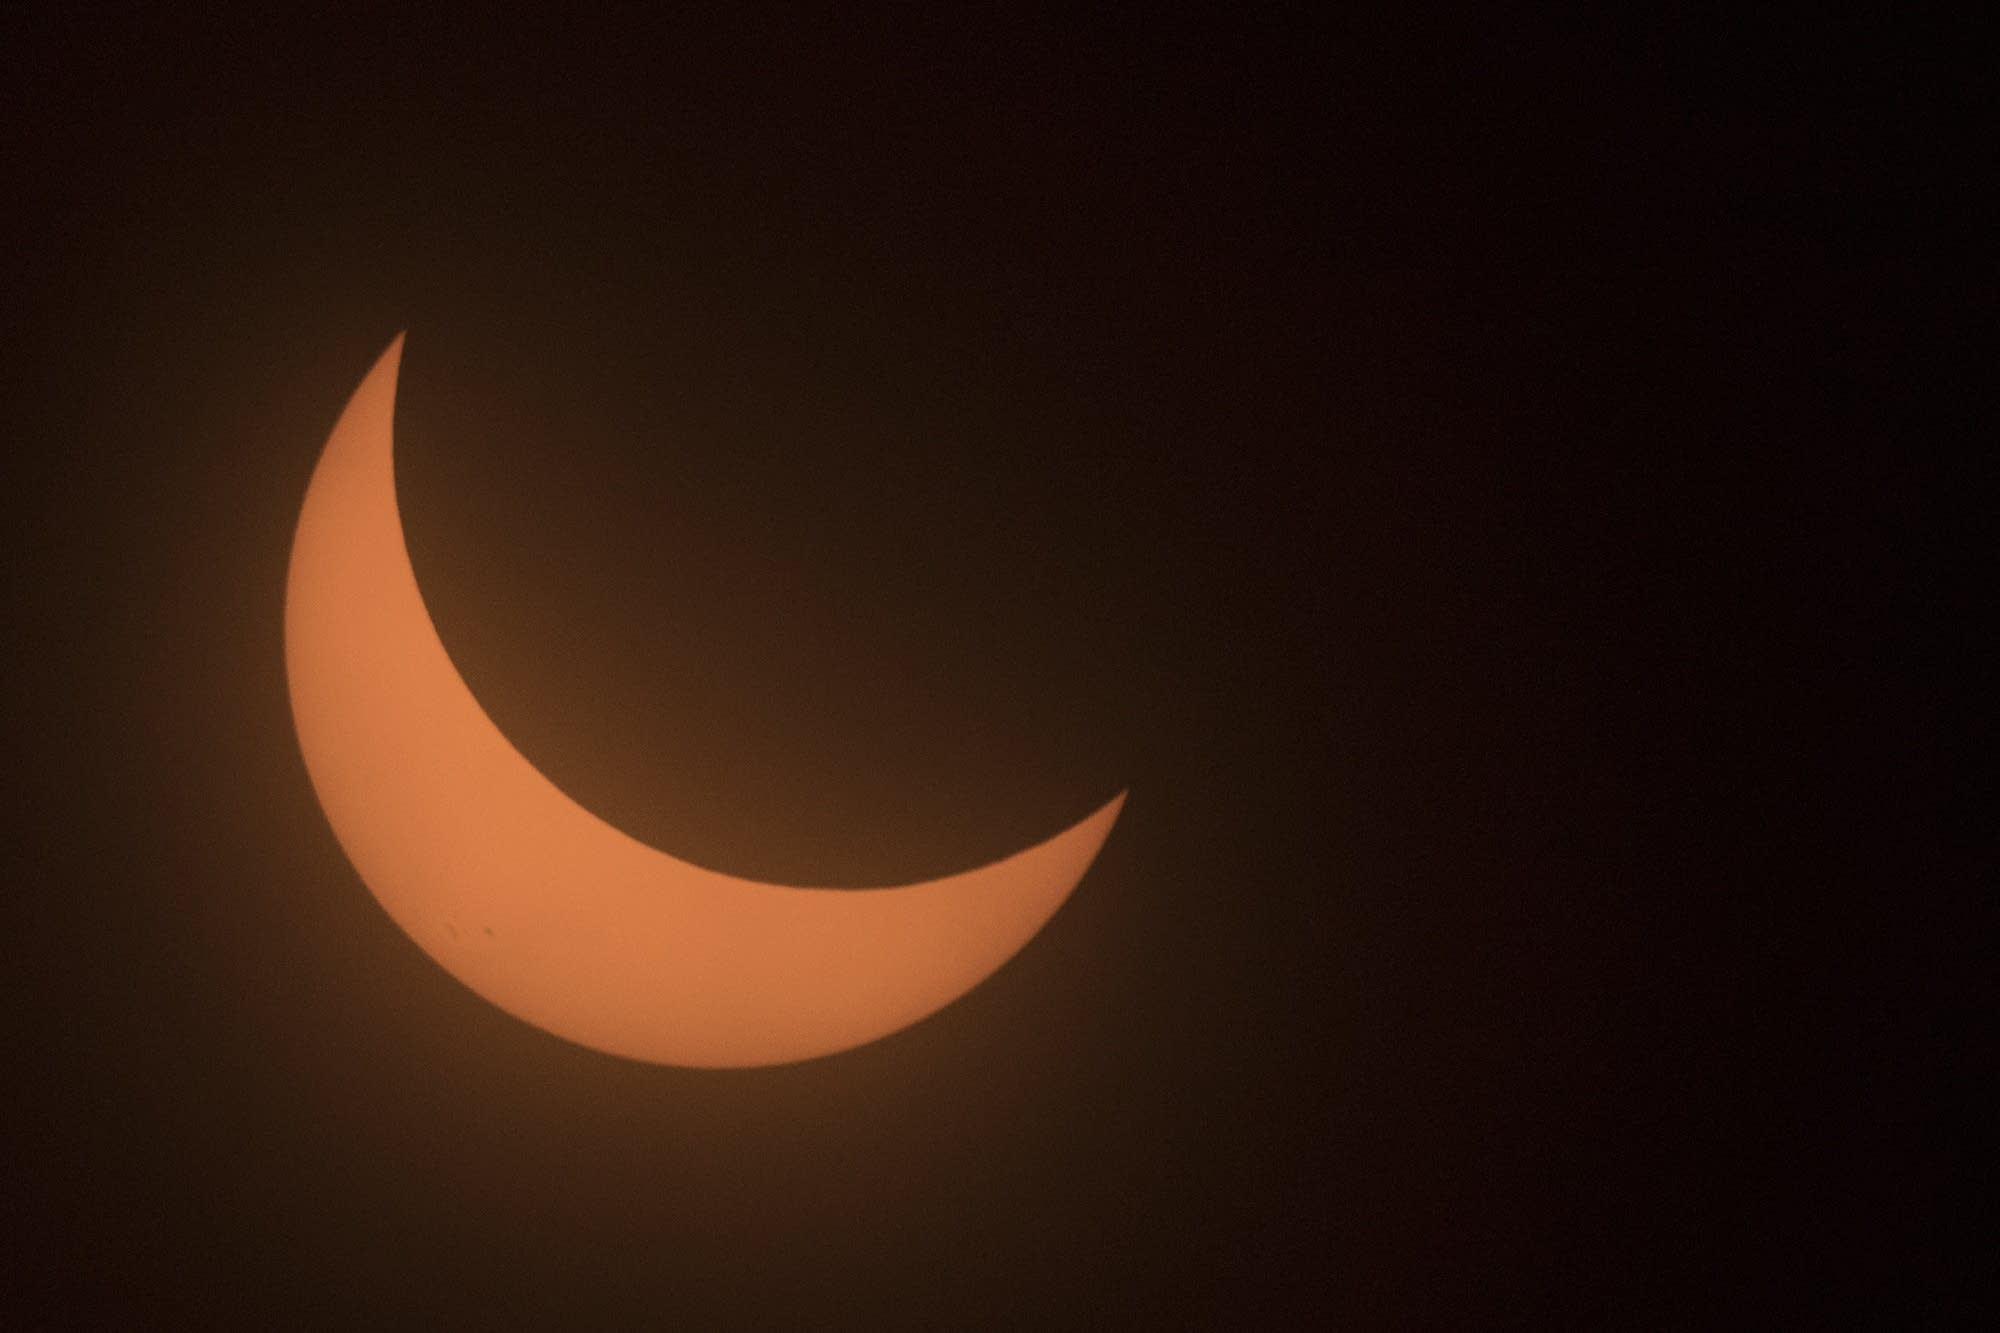 The sun, looking like a crescent moon, moves near totality.